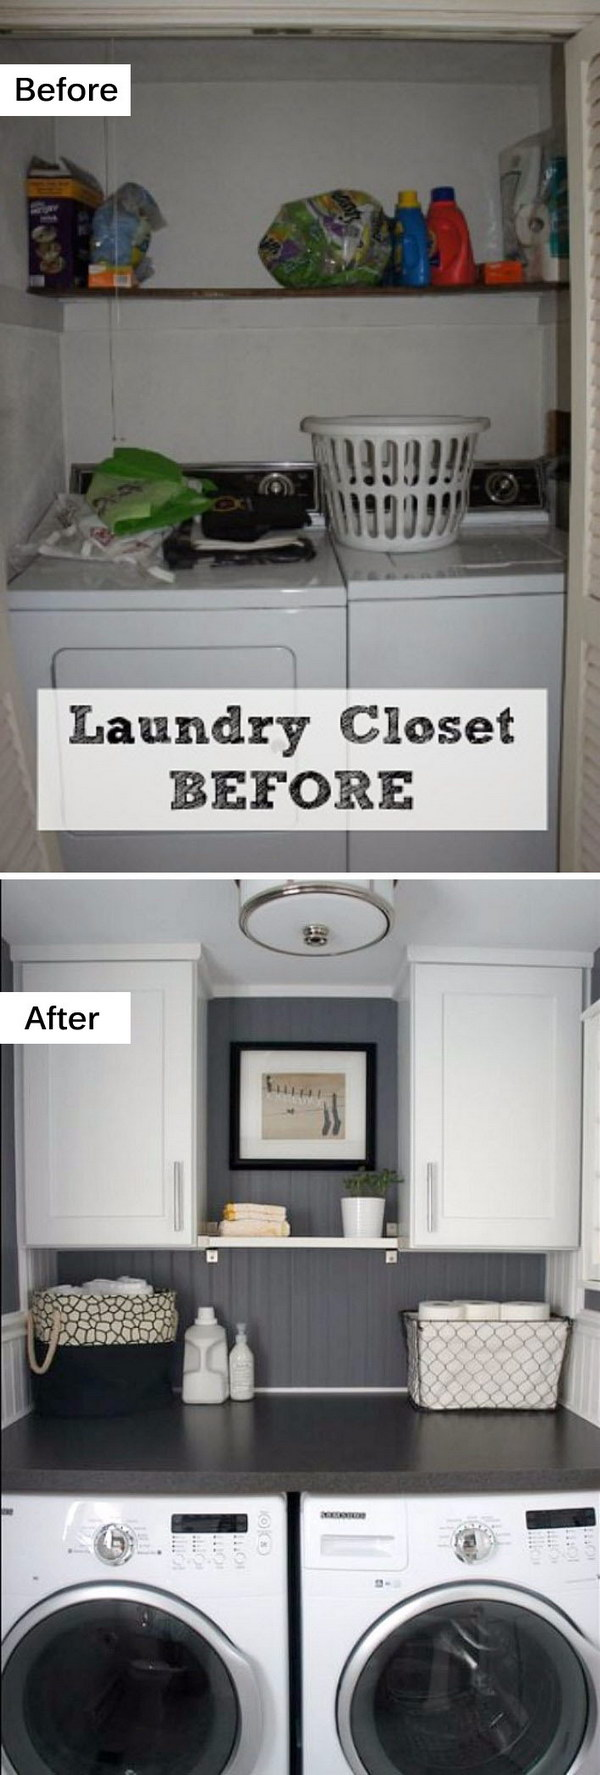 laundry room makeovers charming small. Small Laundry Room Makeover With New Cabinets And A Counter Across The Washer Dryer Makeovers Charming L